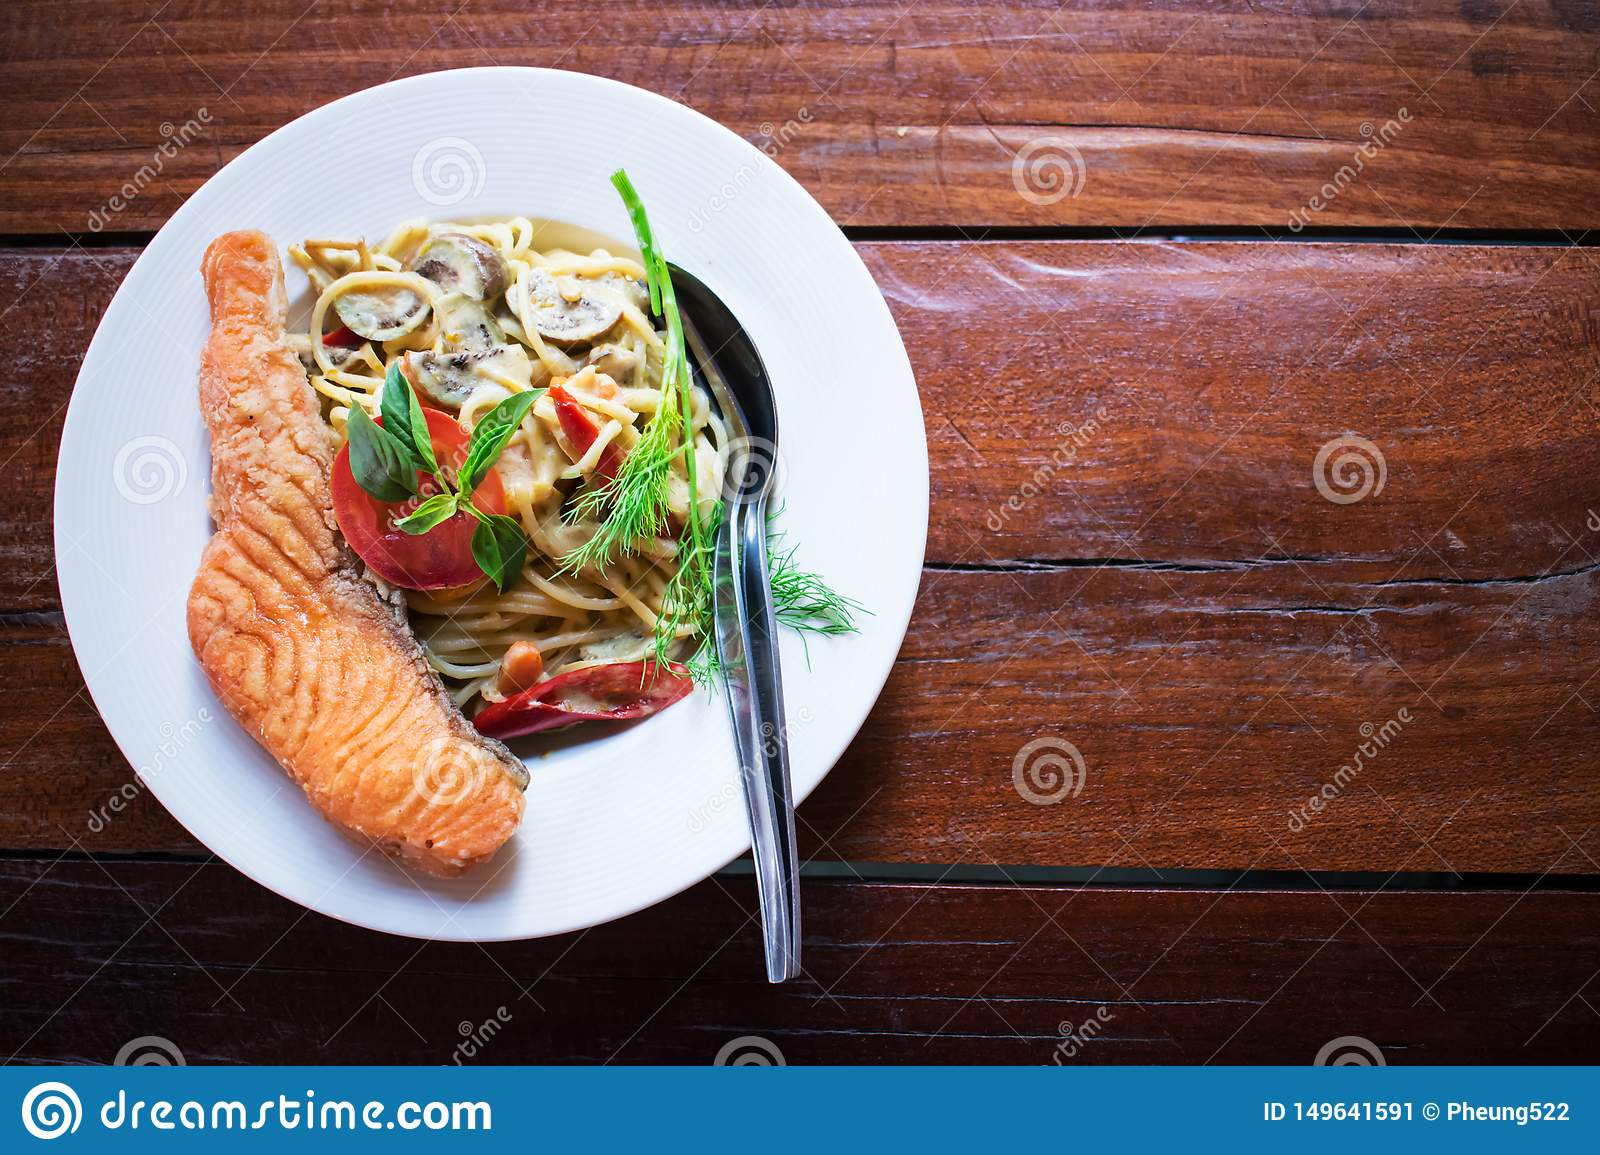 Spaghetti with green curry And a large salmon in a white dish placed on an old wooden table. Thai food